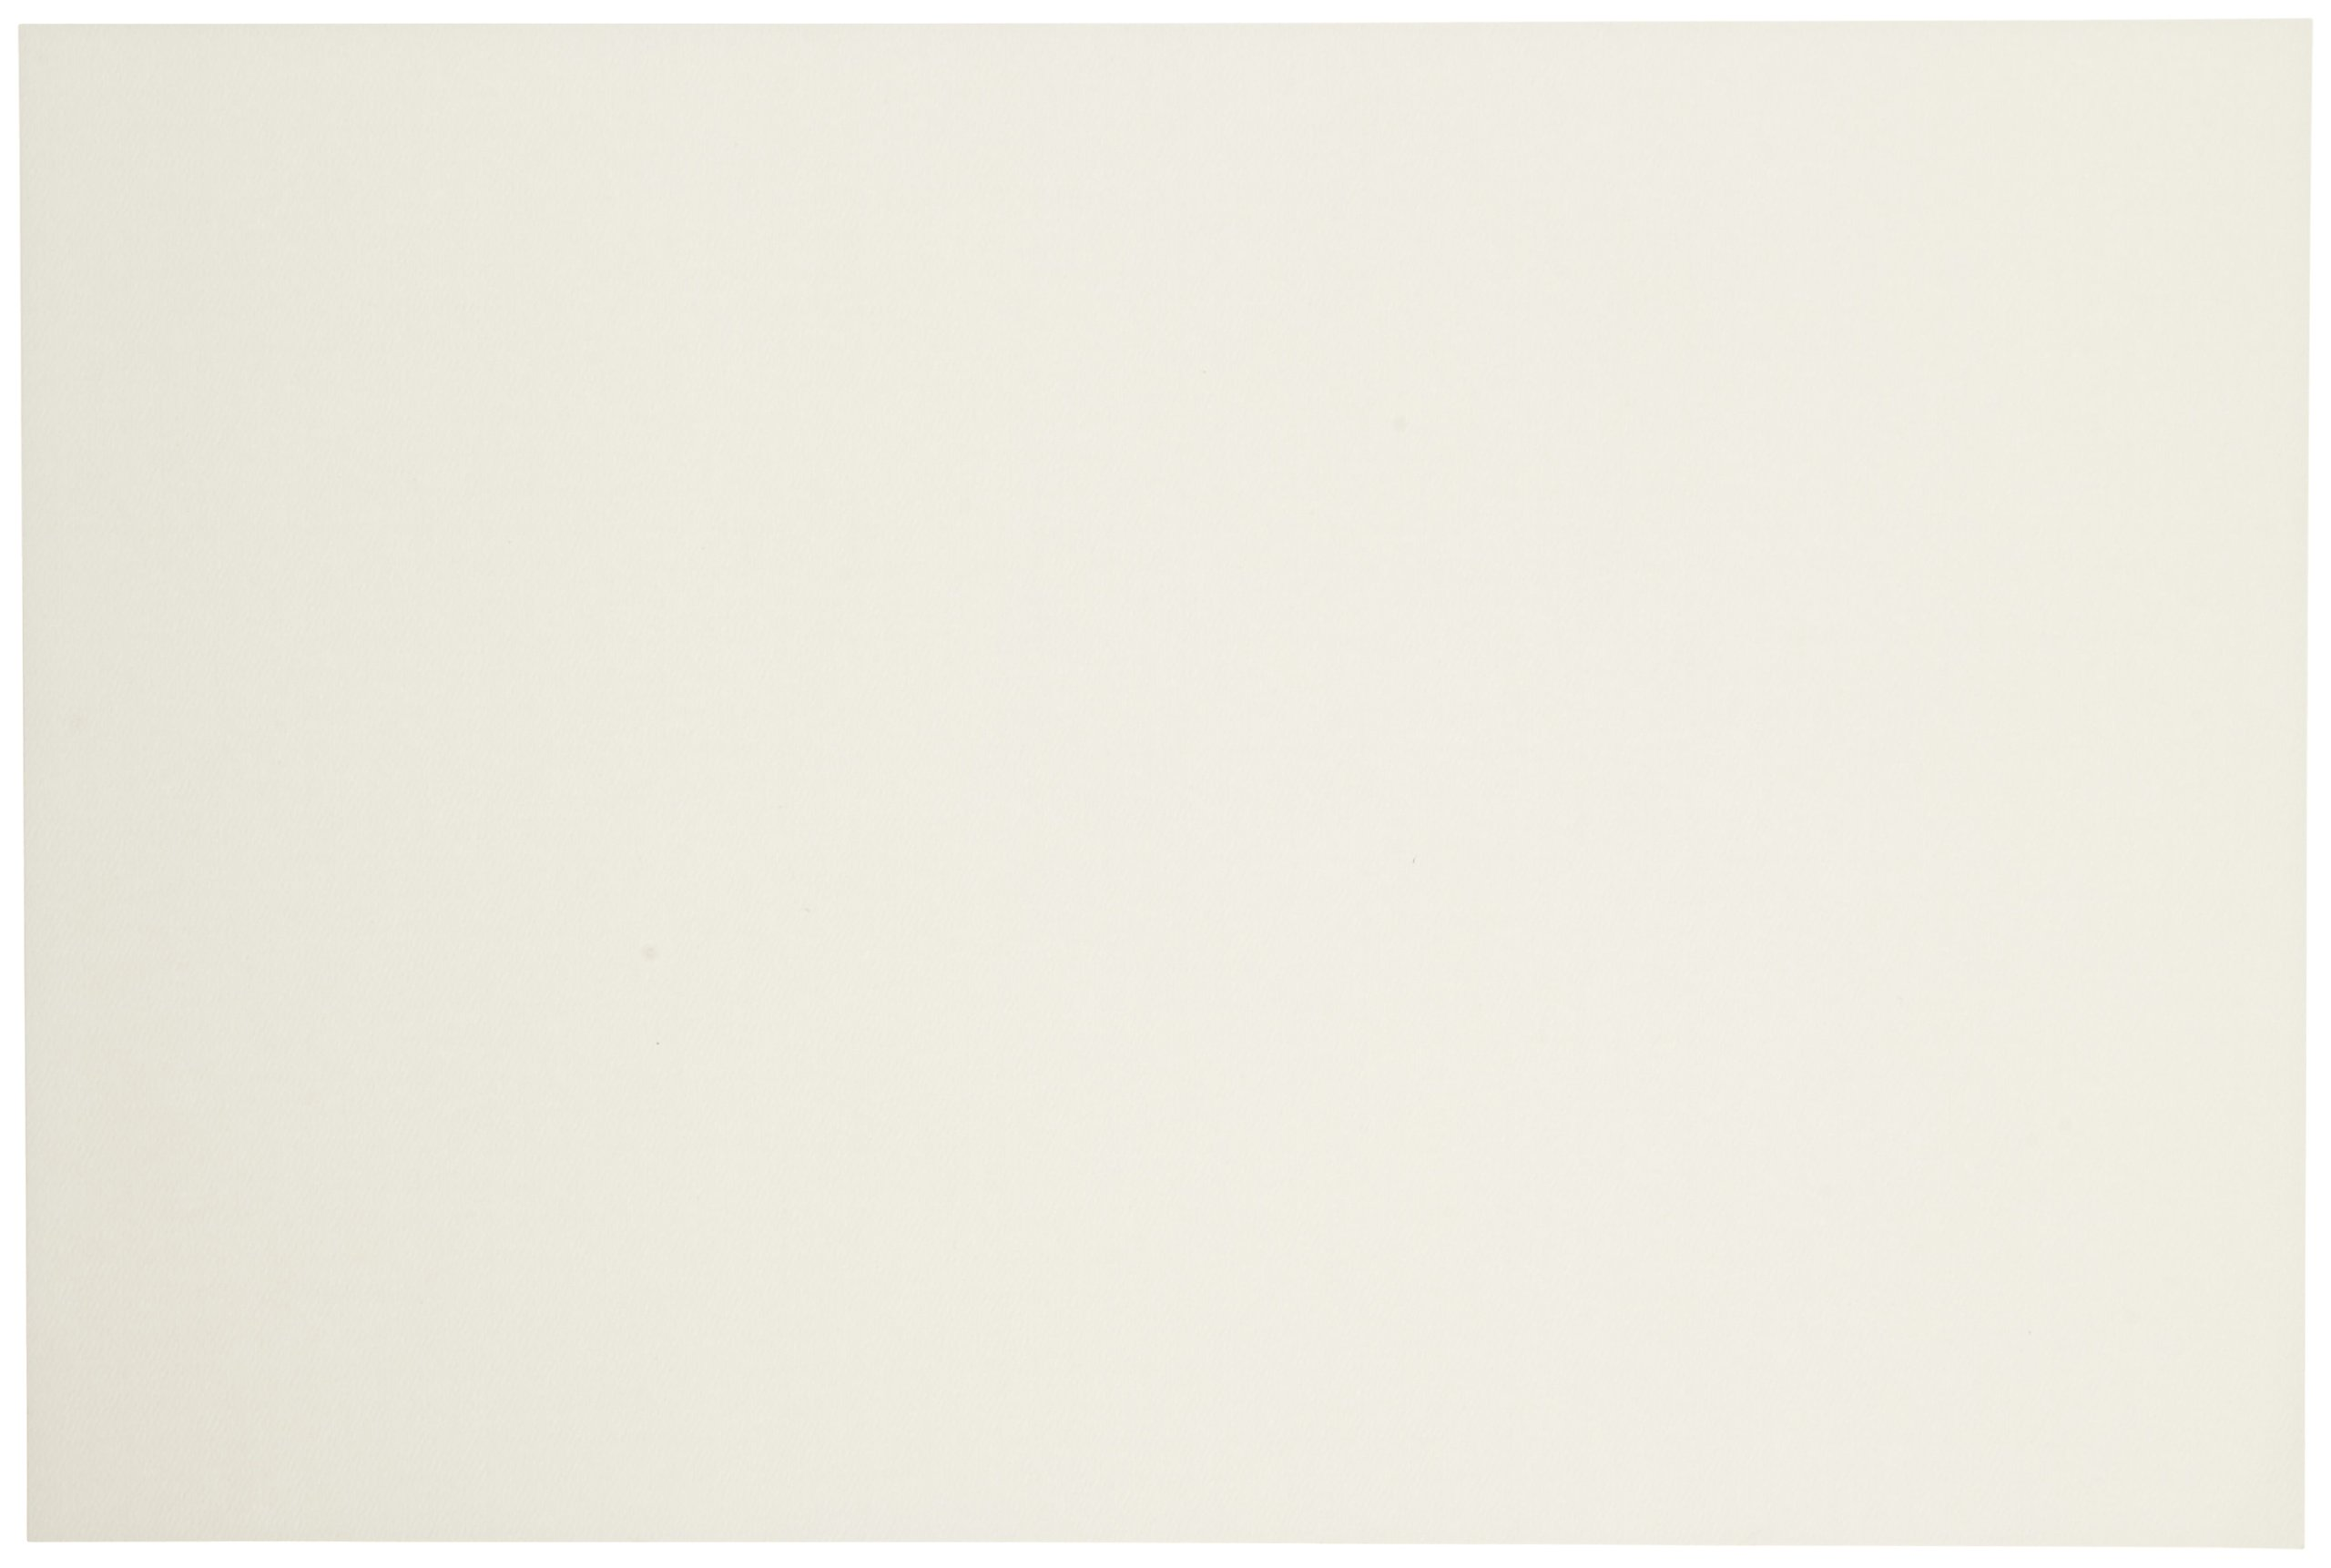 Sax - 408404 Watercolor Beginner Paper, 90 lbs, 12 x 18 Inches, Natural White, Pack of 500